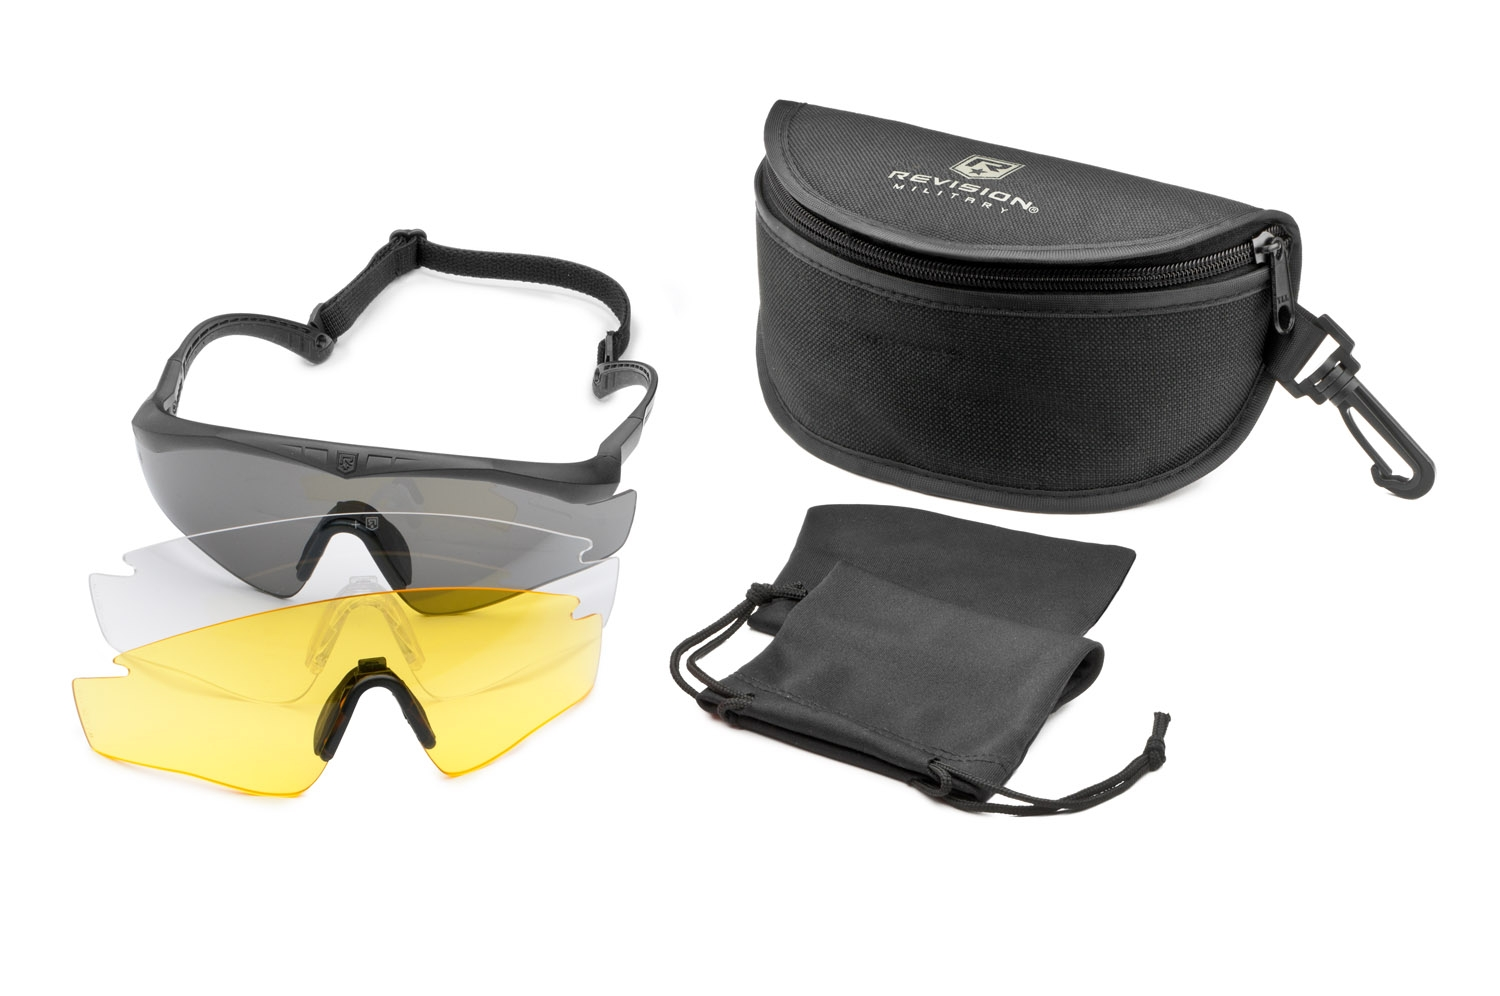 revision sawfly max wrap deluxe kit eyewear system 3